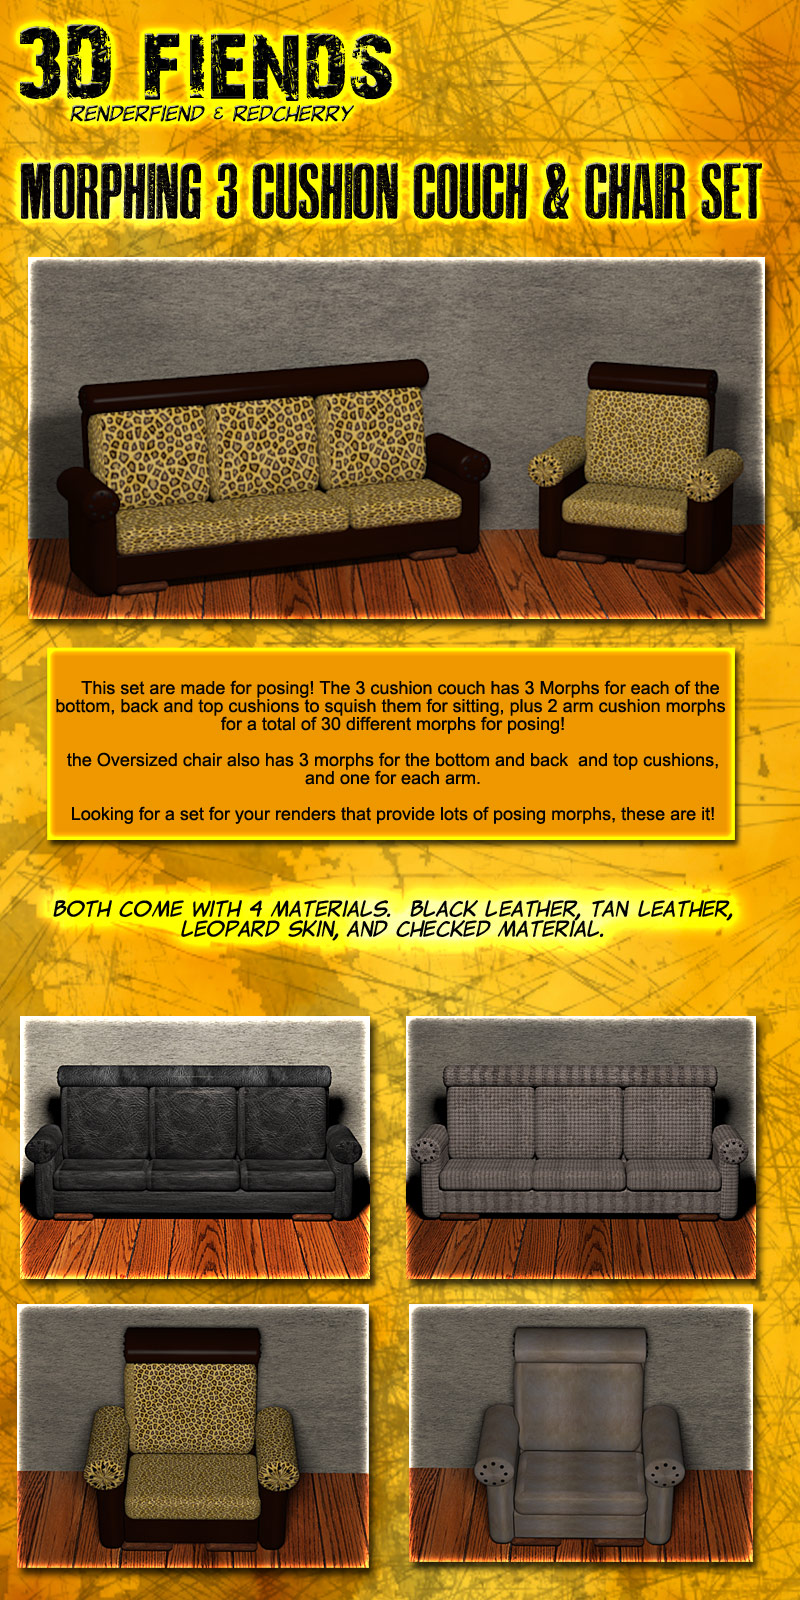 3DFiend's Morphing 3 Cushion Couch and Chair Set